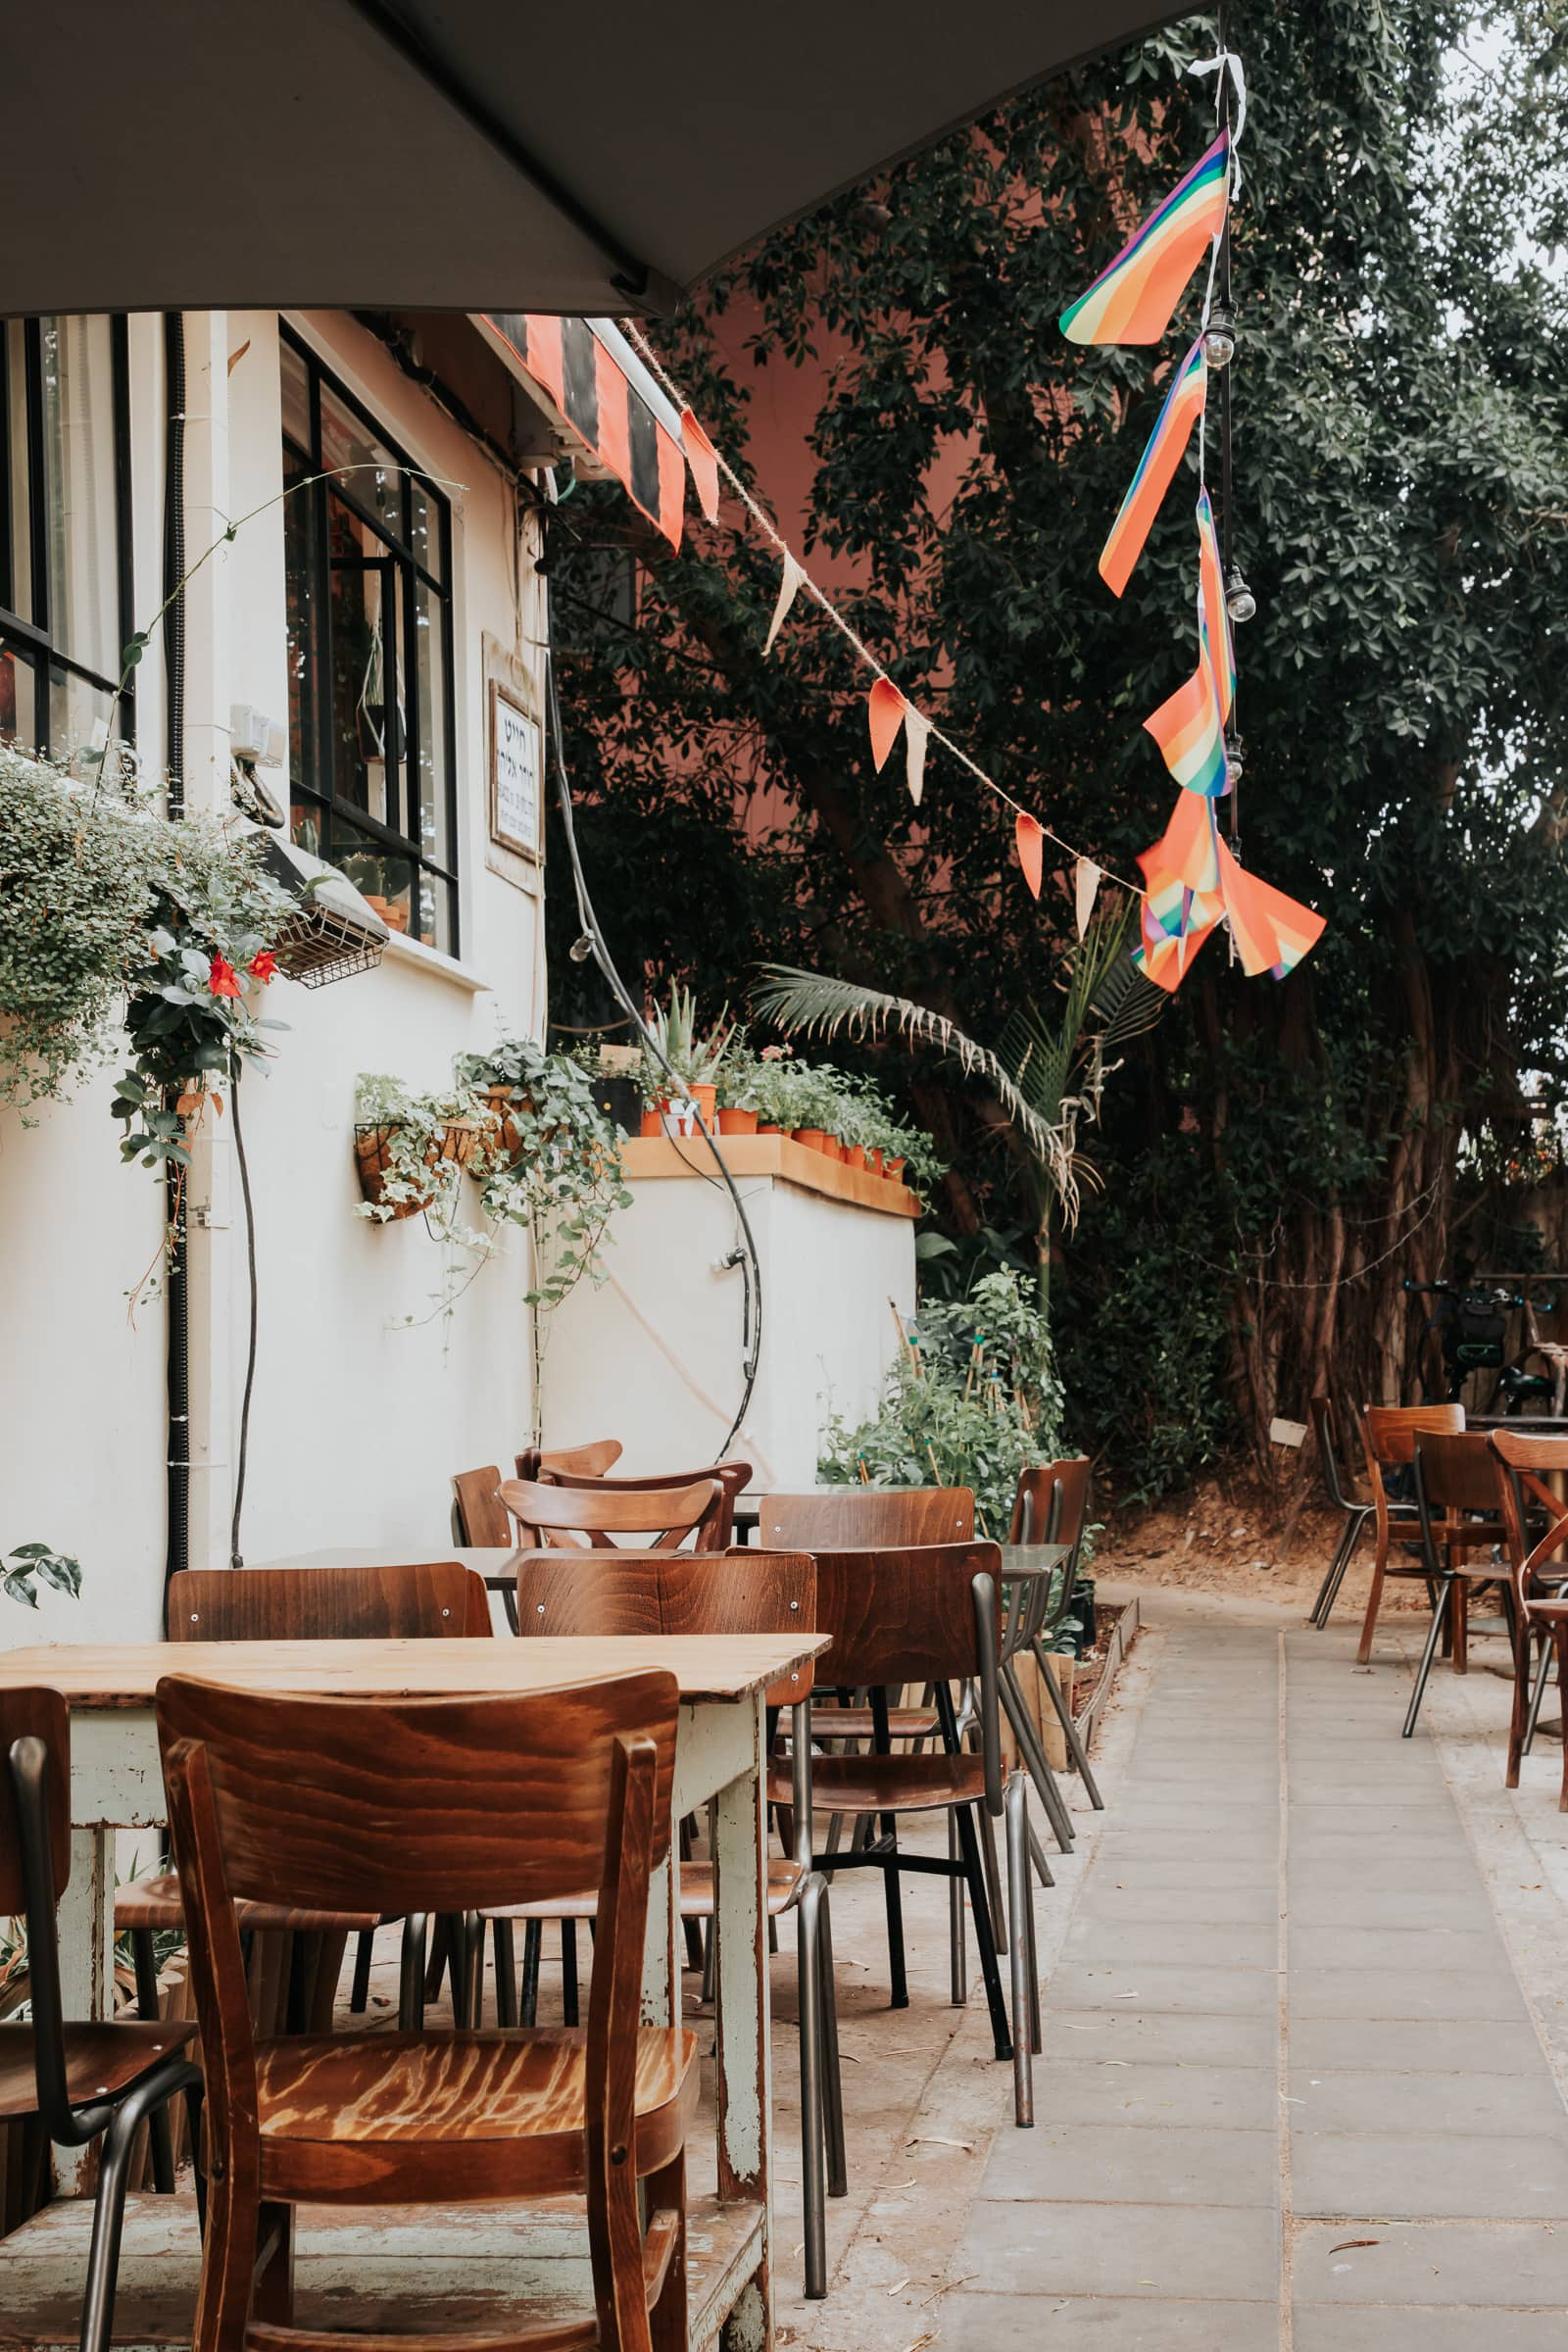 10 amazing things to do in  Tel Aviv: What not to miss! 3